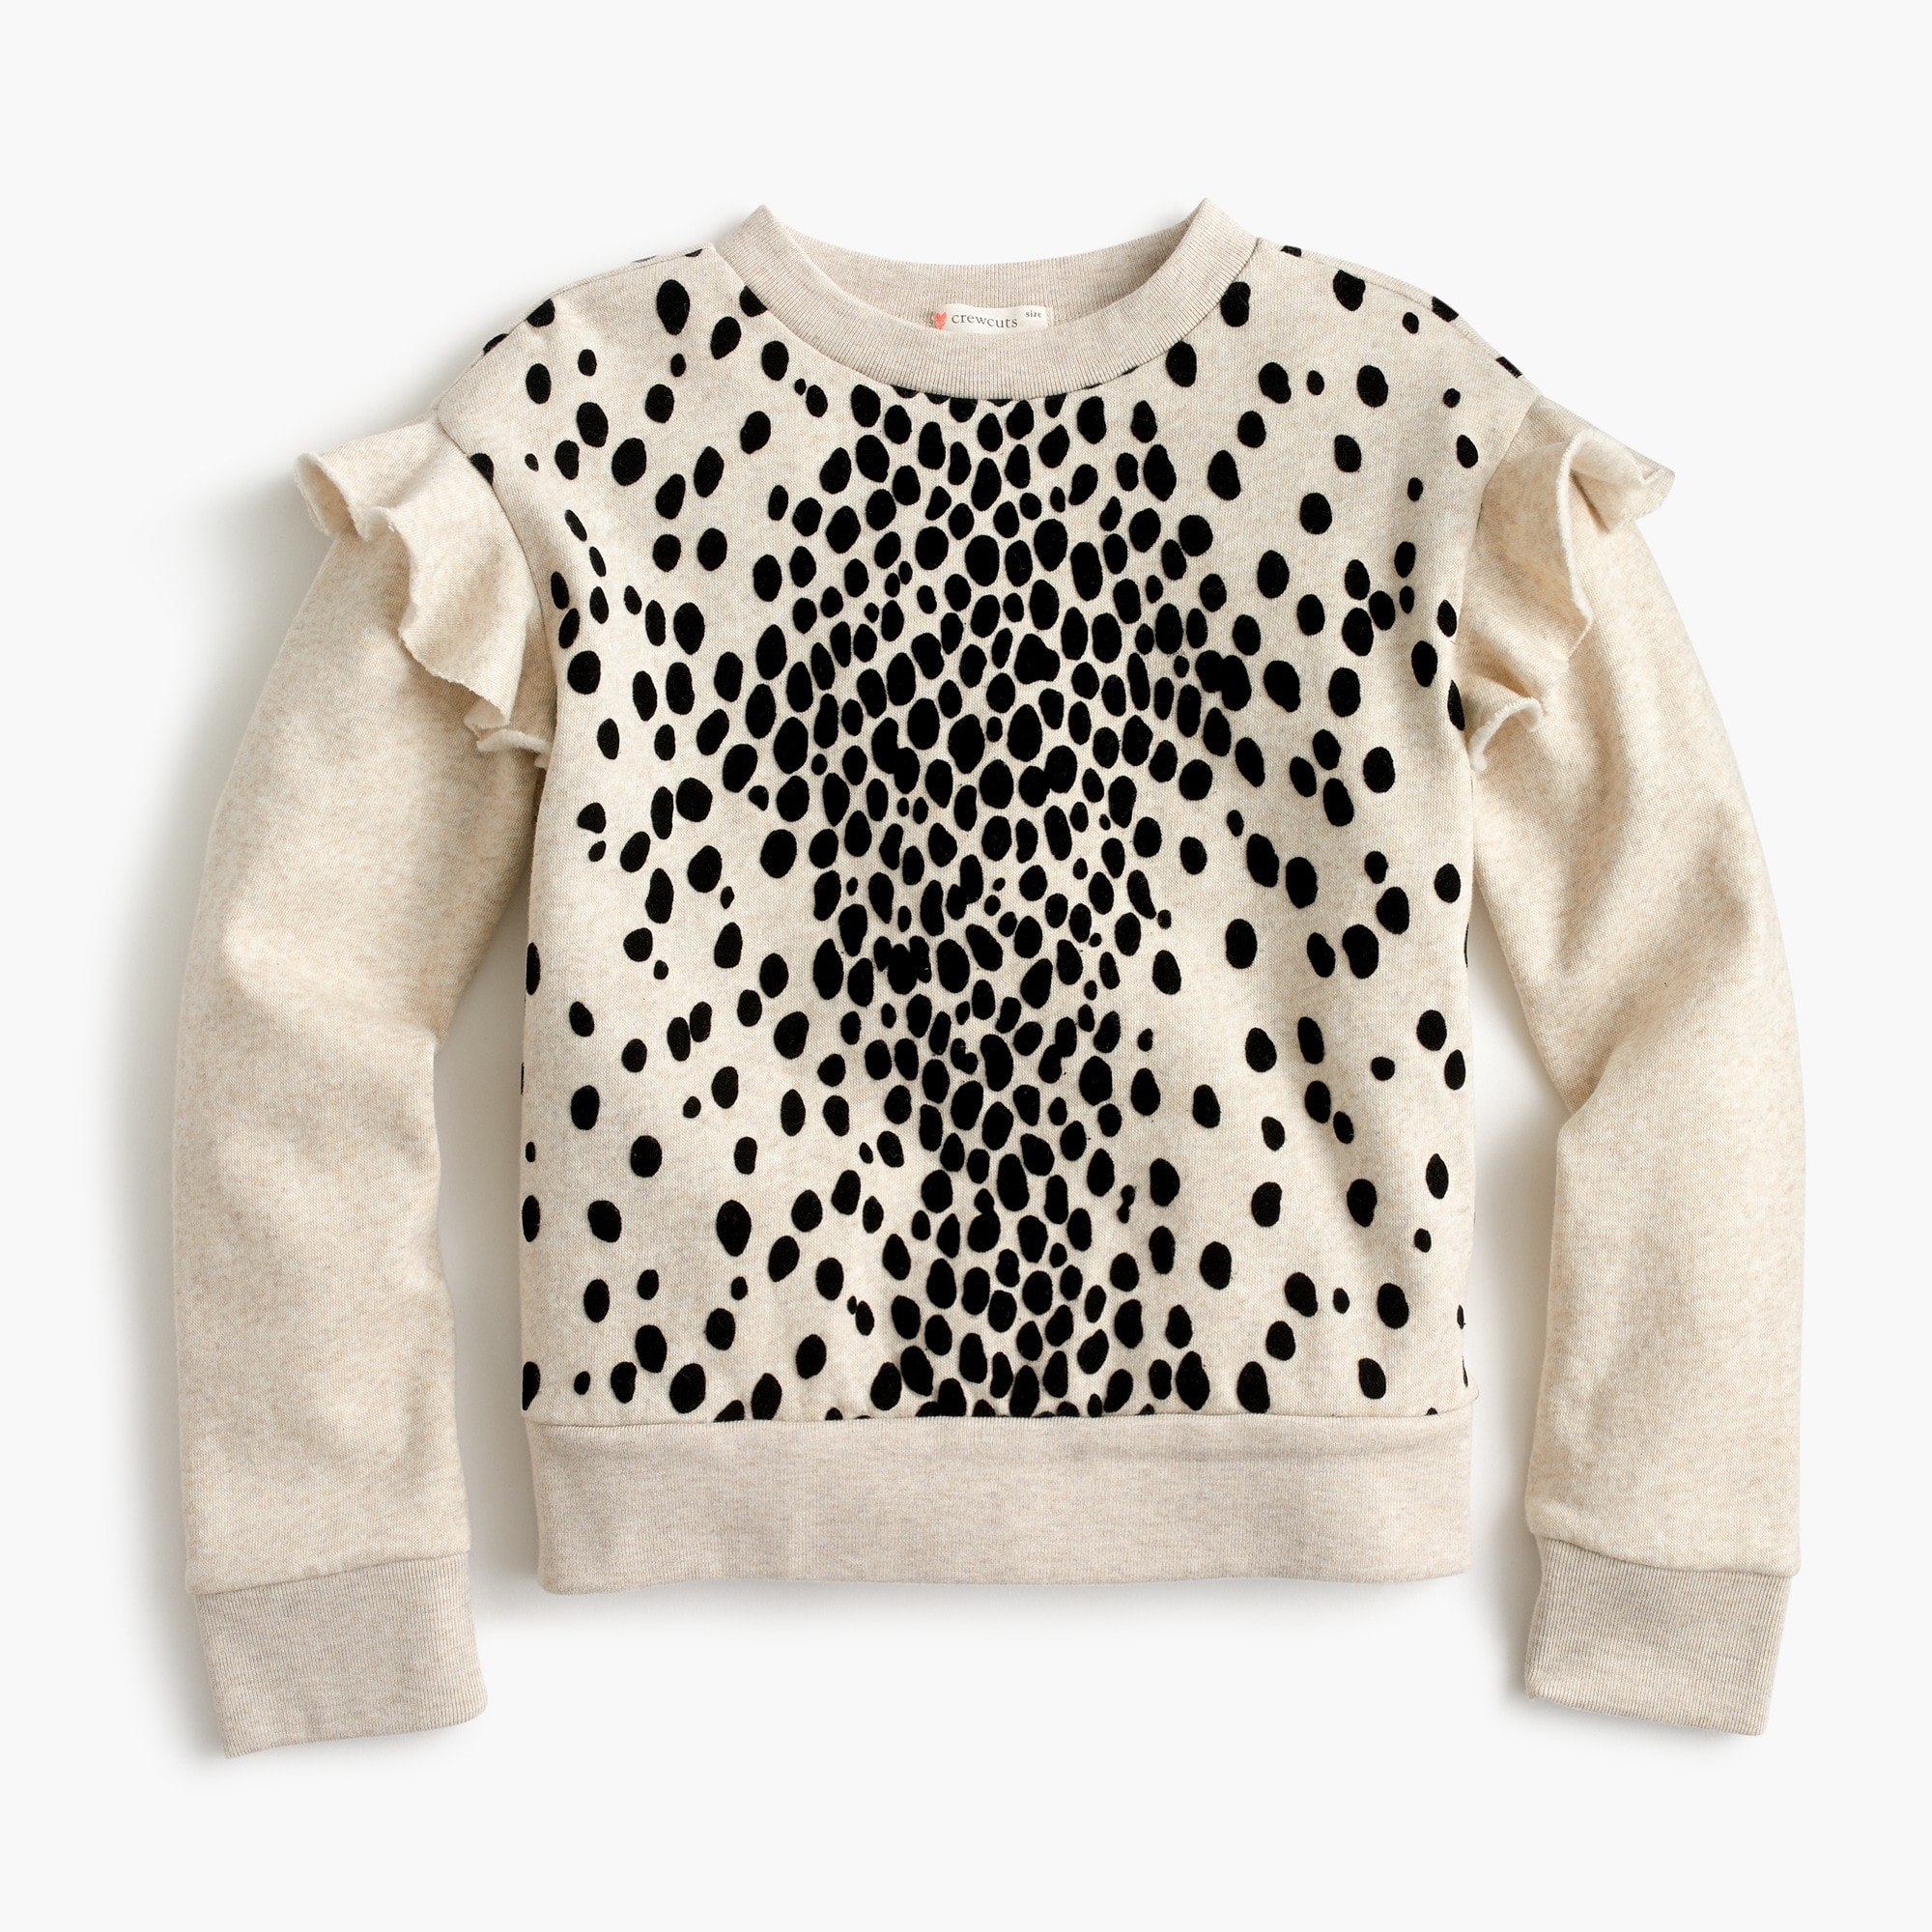 Girls' ruffle sweatshirt in leopard